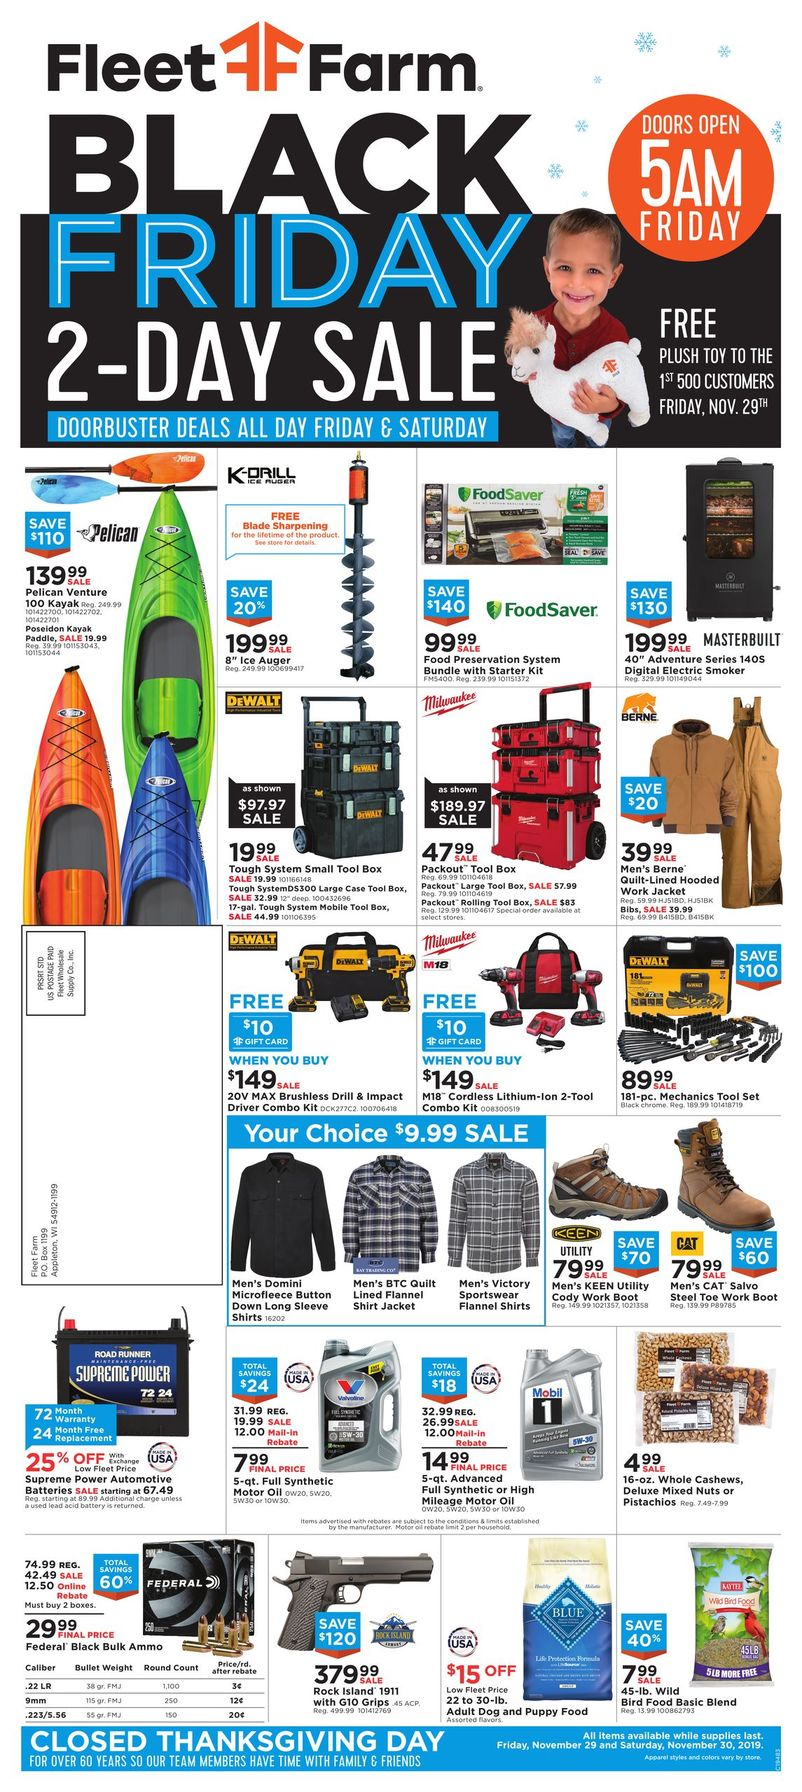 Mills Fleet Farm Black Friday Ad 2019